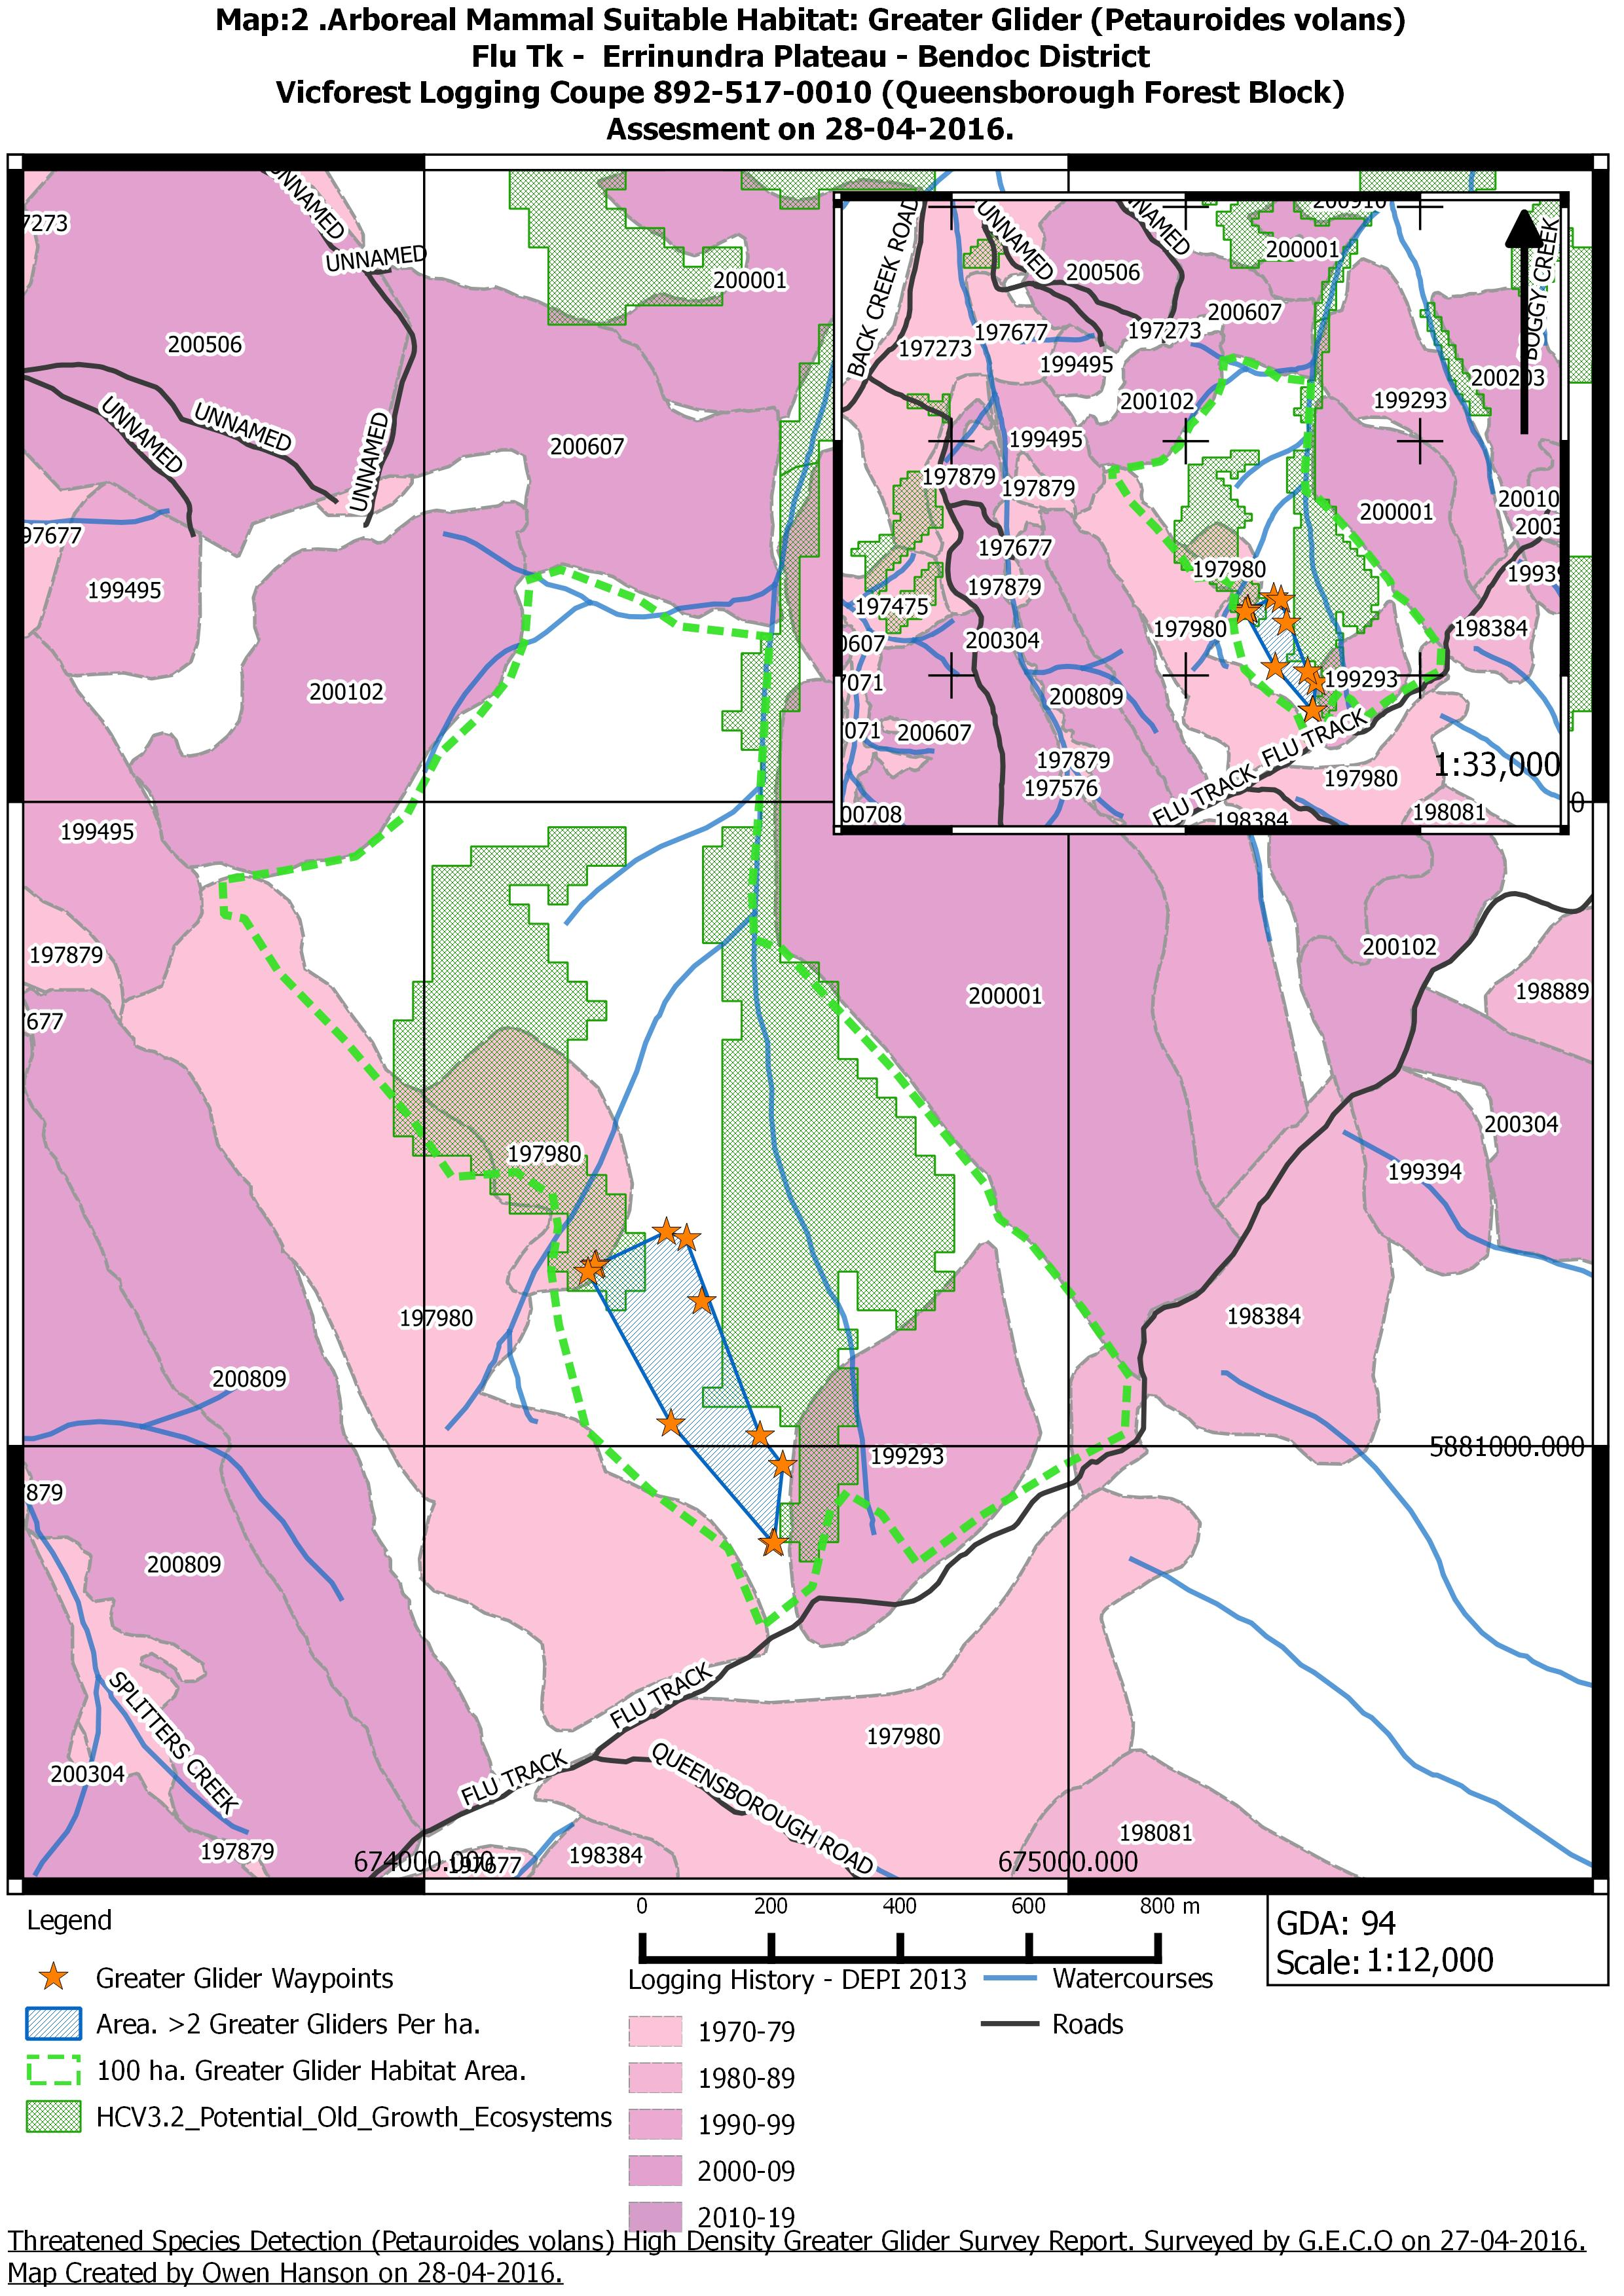 Map2_Greater_Glider_Habitat_Flu_Tk_Report_892-517-0010.jpeg